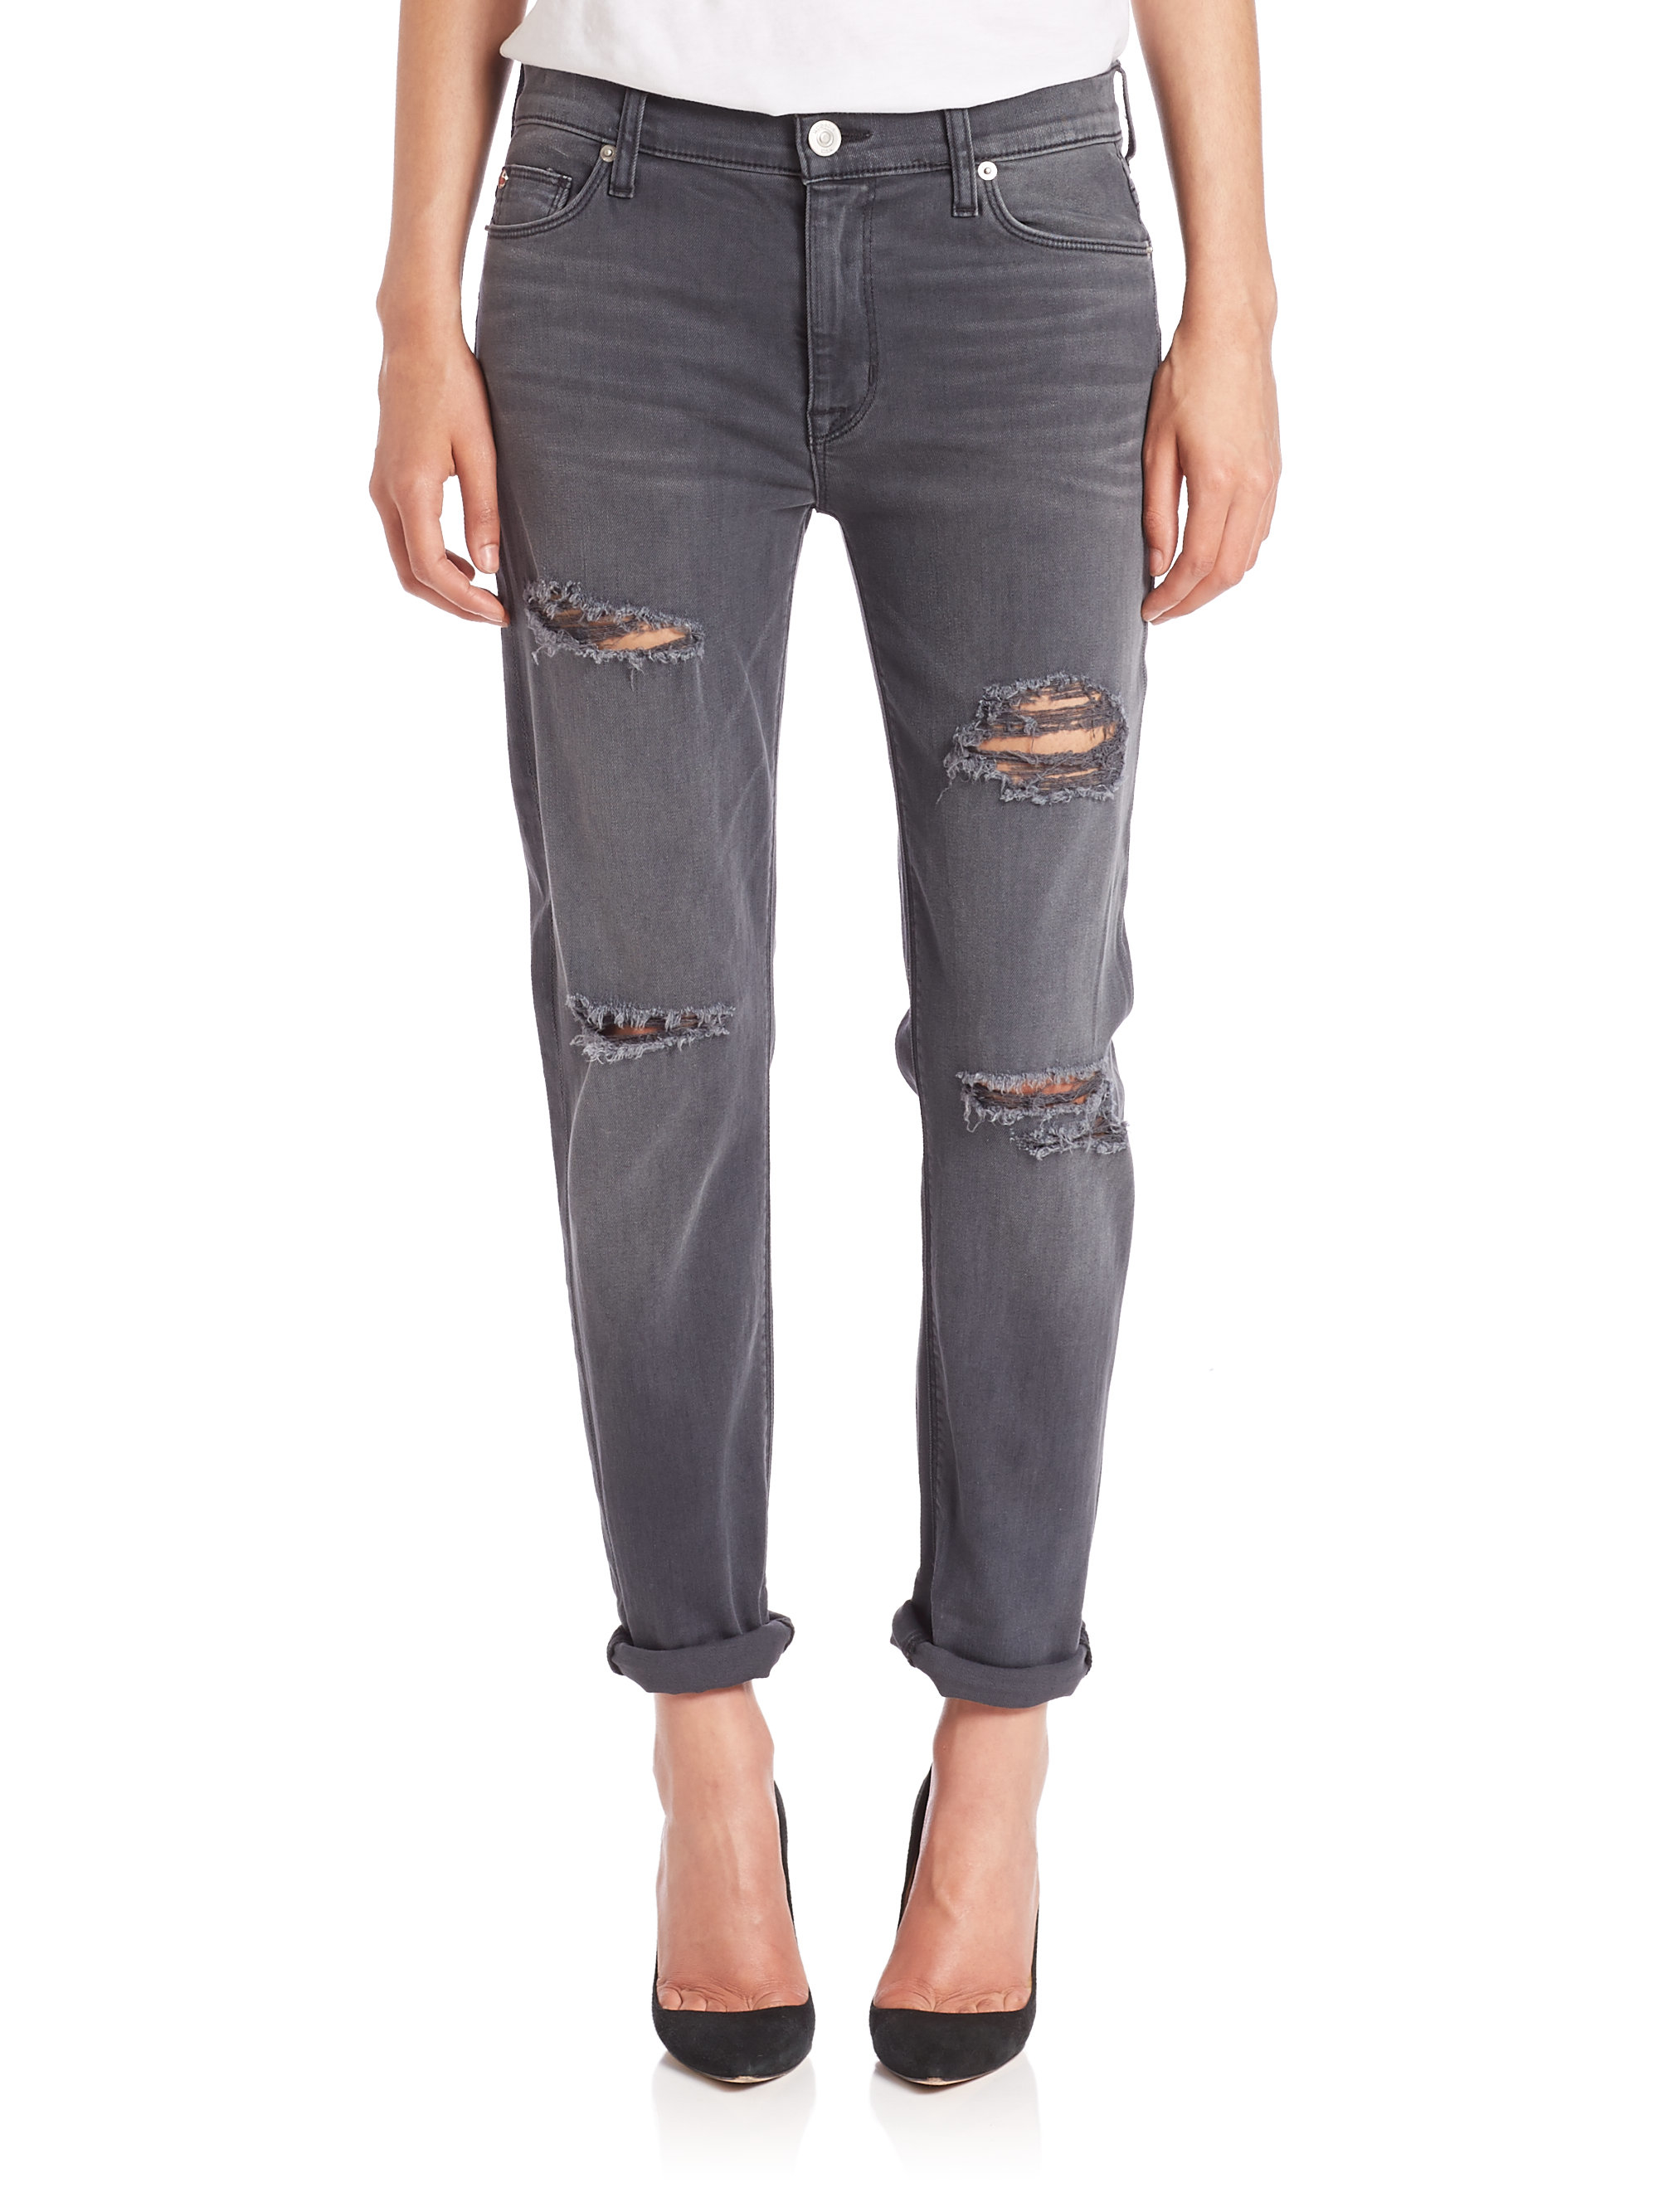 Hudson jeans Brody Distressed Slim Boyfriend Jeans in Gray | Lyst